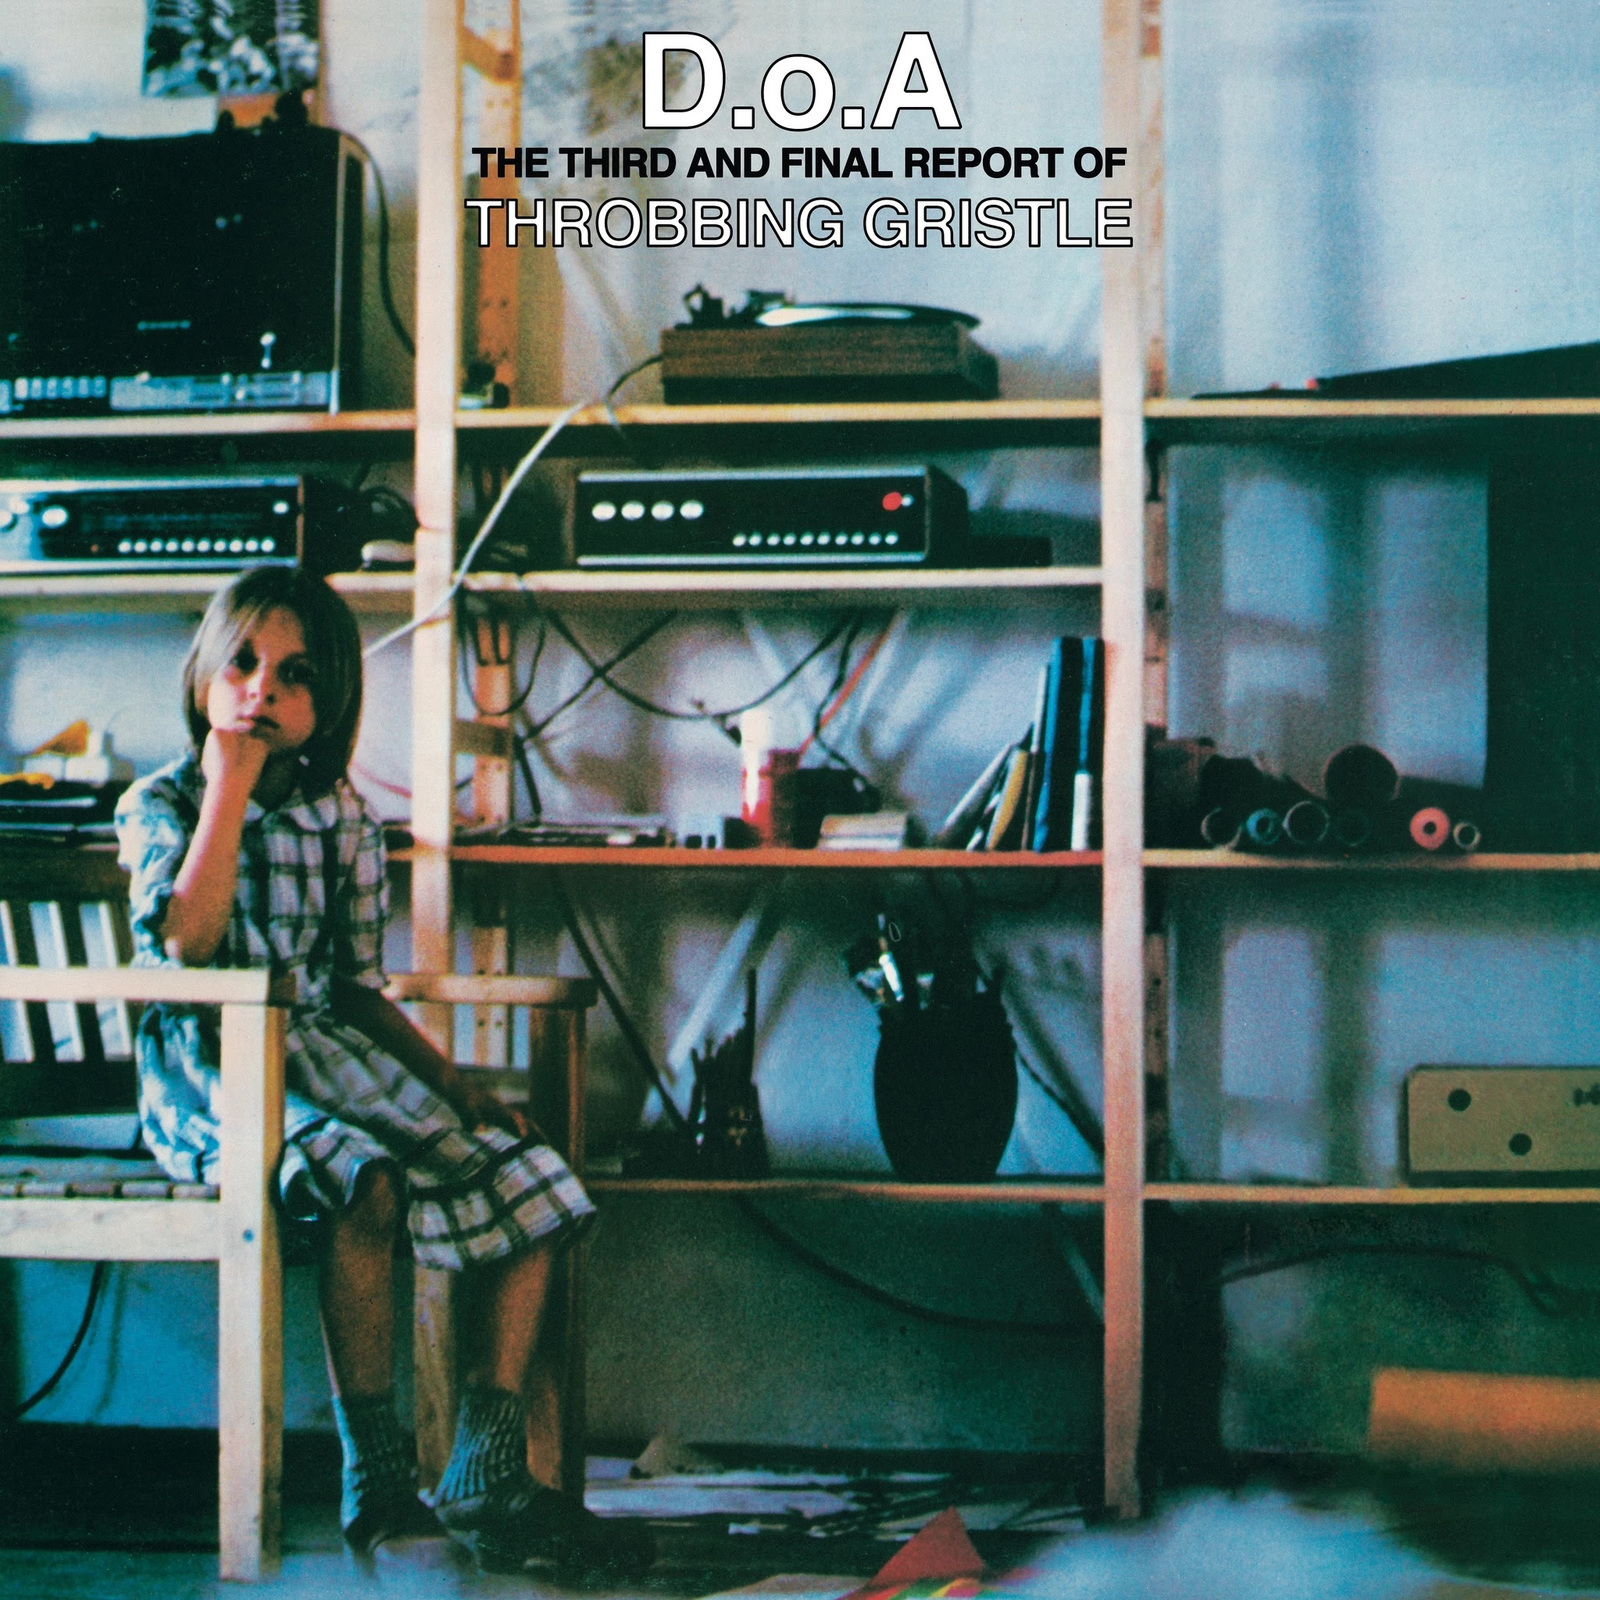 D.O.A. The Third And Final Report Of Throbbing Gristle (2CD) by Throbbing Gristle image